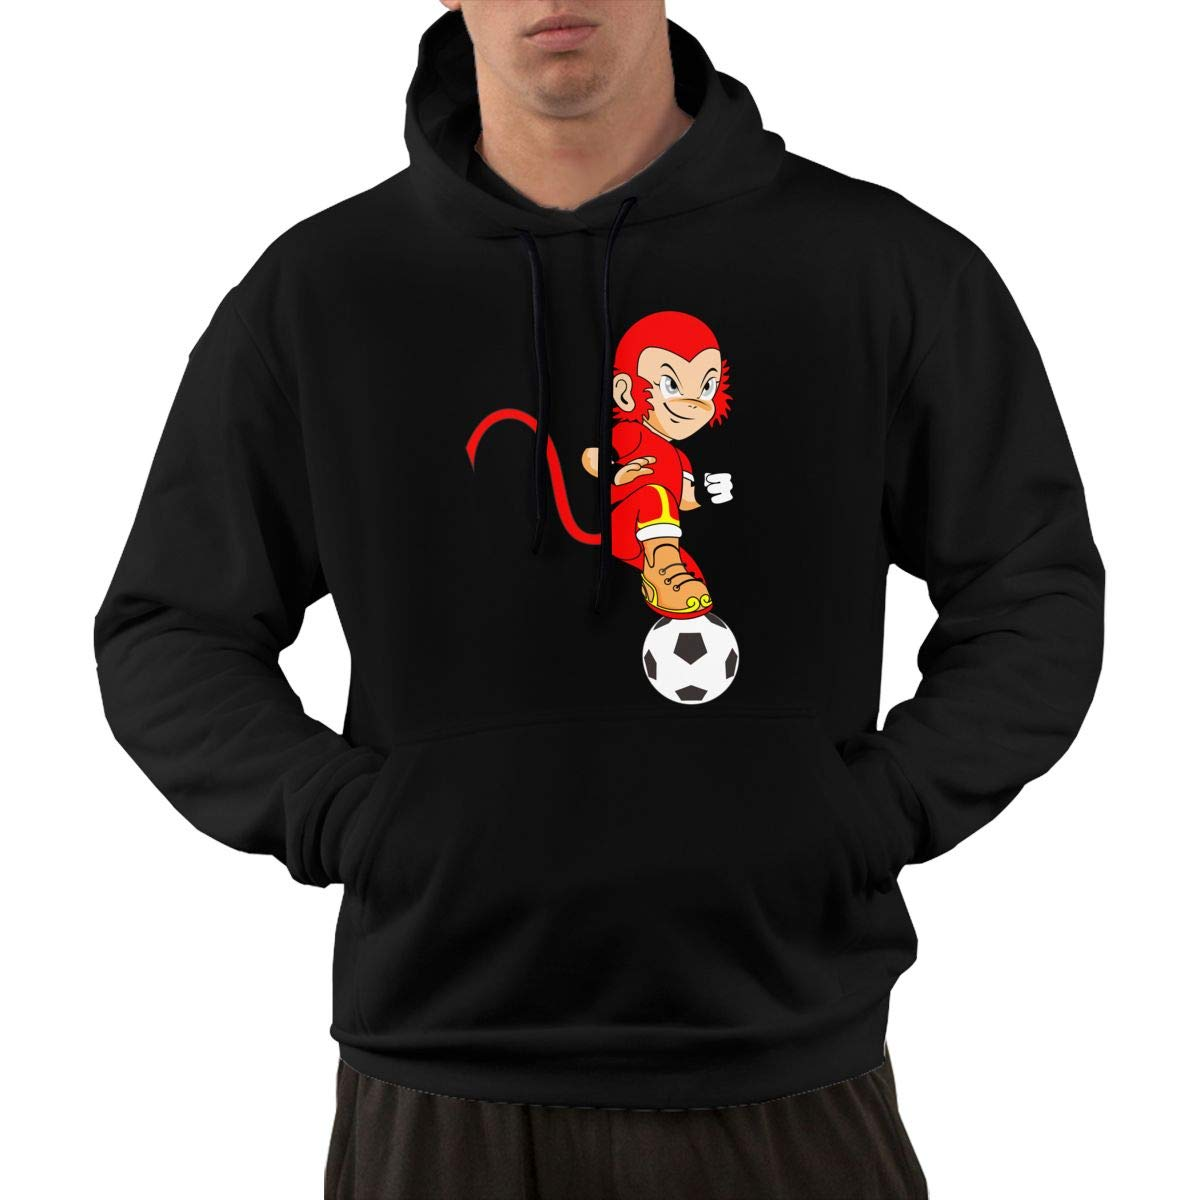 The Red Monkey Play Football Hoodie Mens Autum Winter Casual Workout Graphic Hoodie Hooded Sweatshirt with Front Pocket